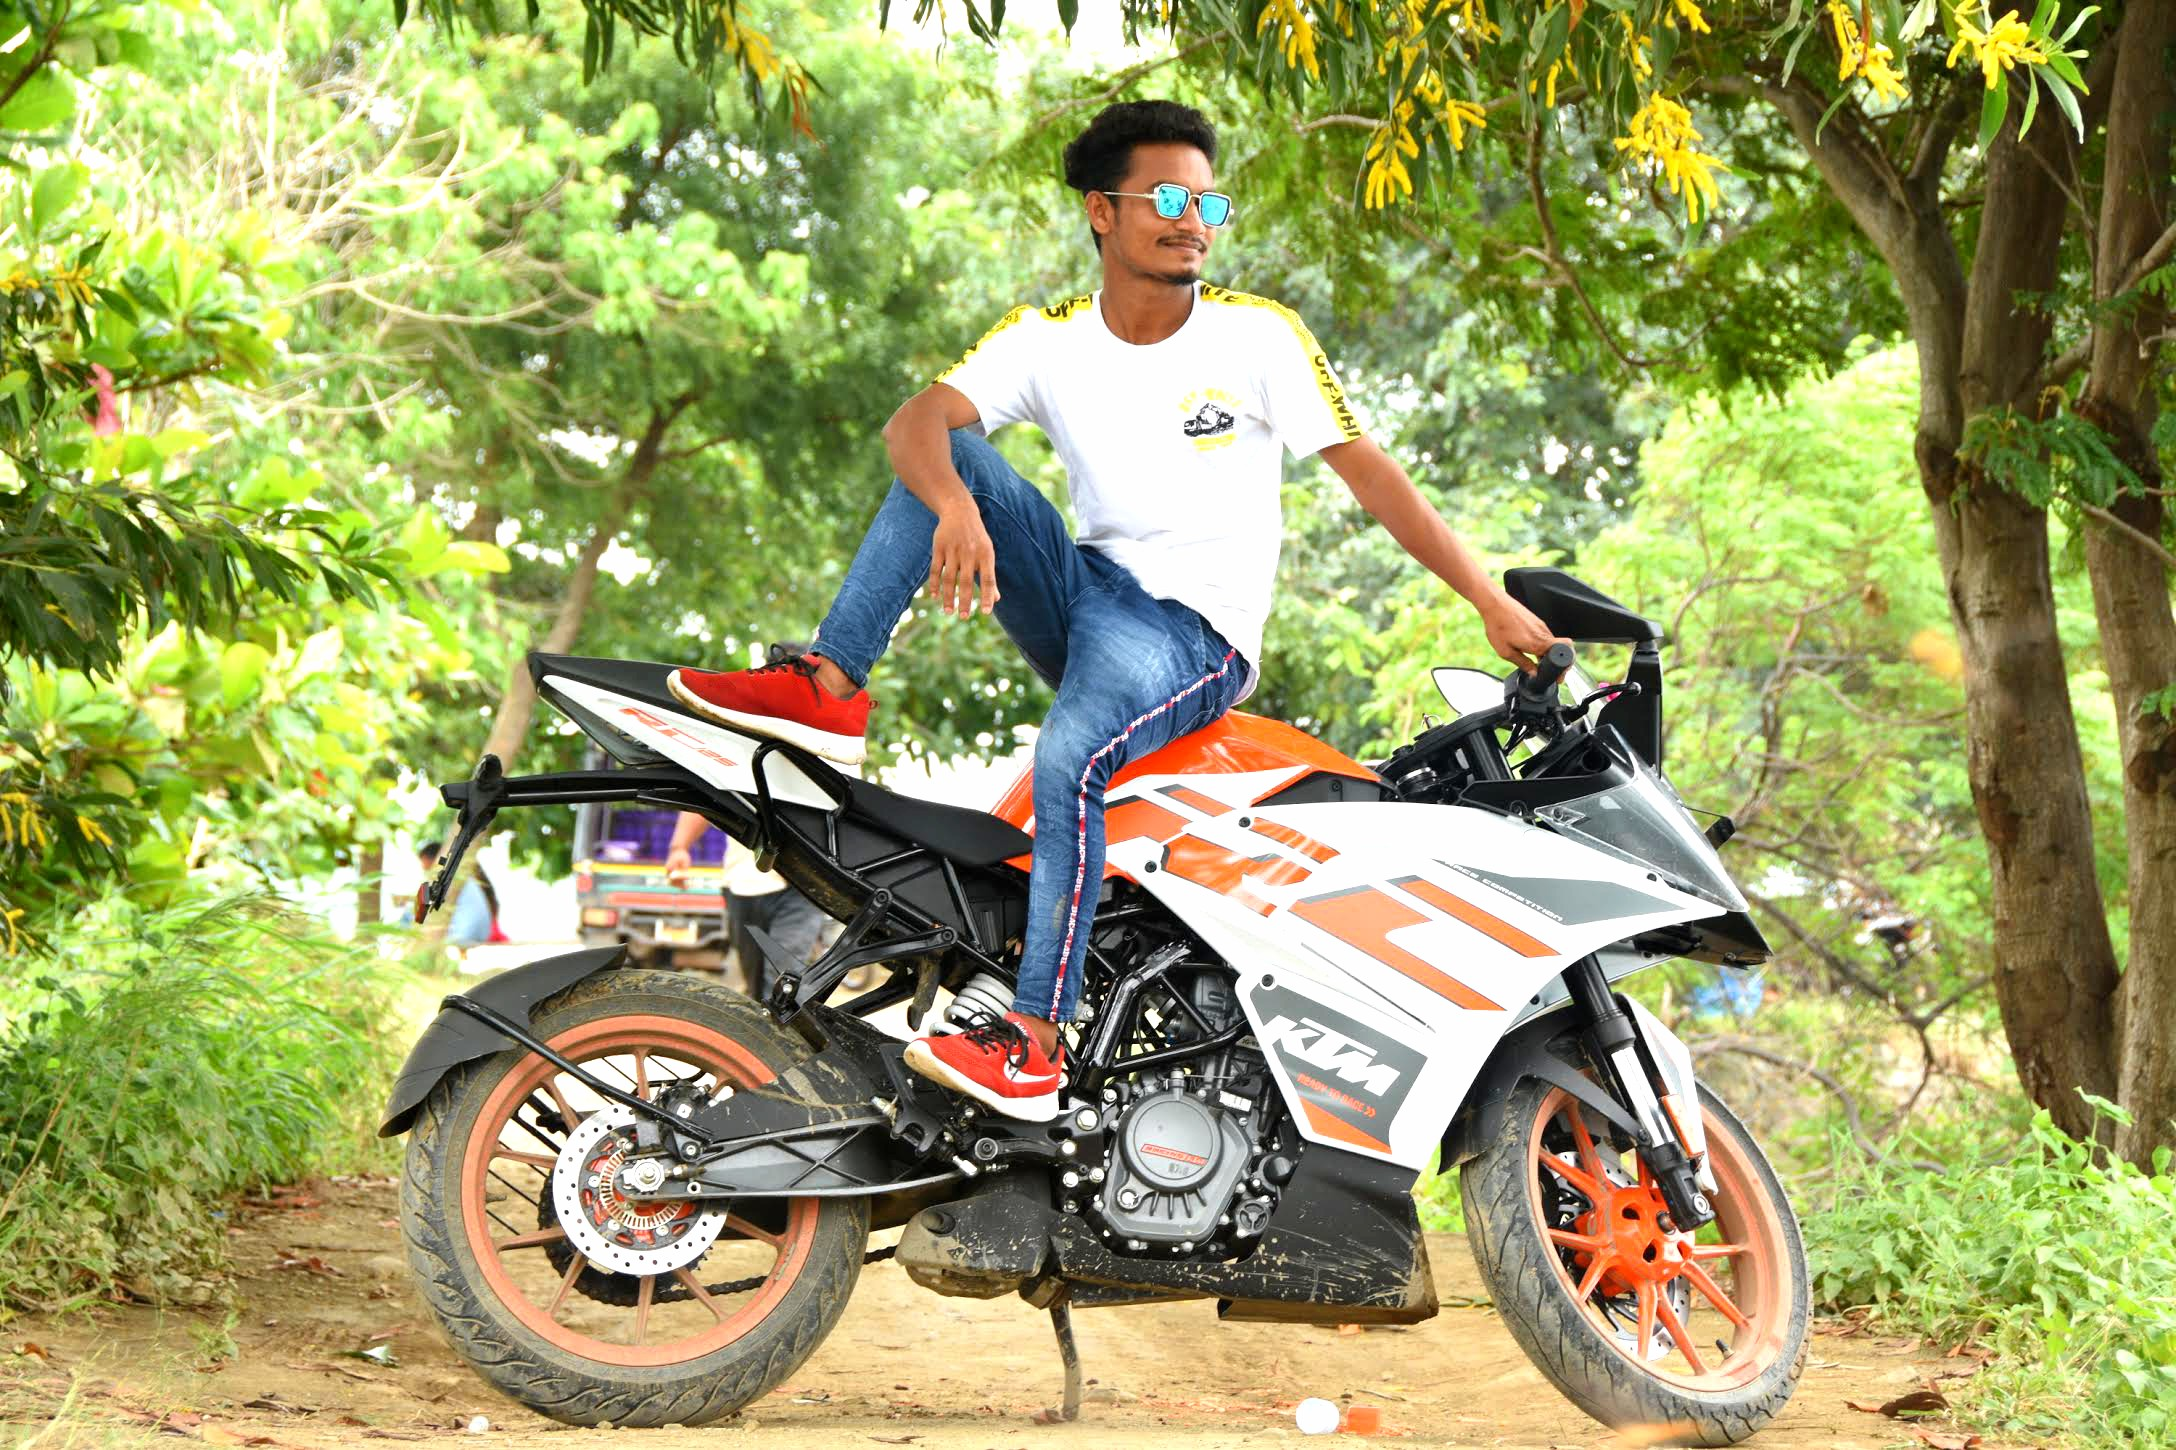 Boy posing on KTM bike